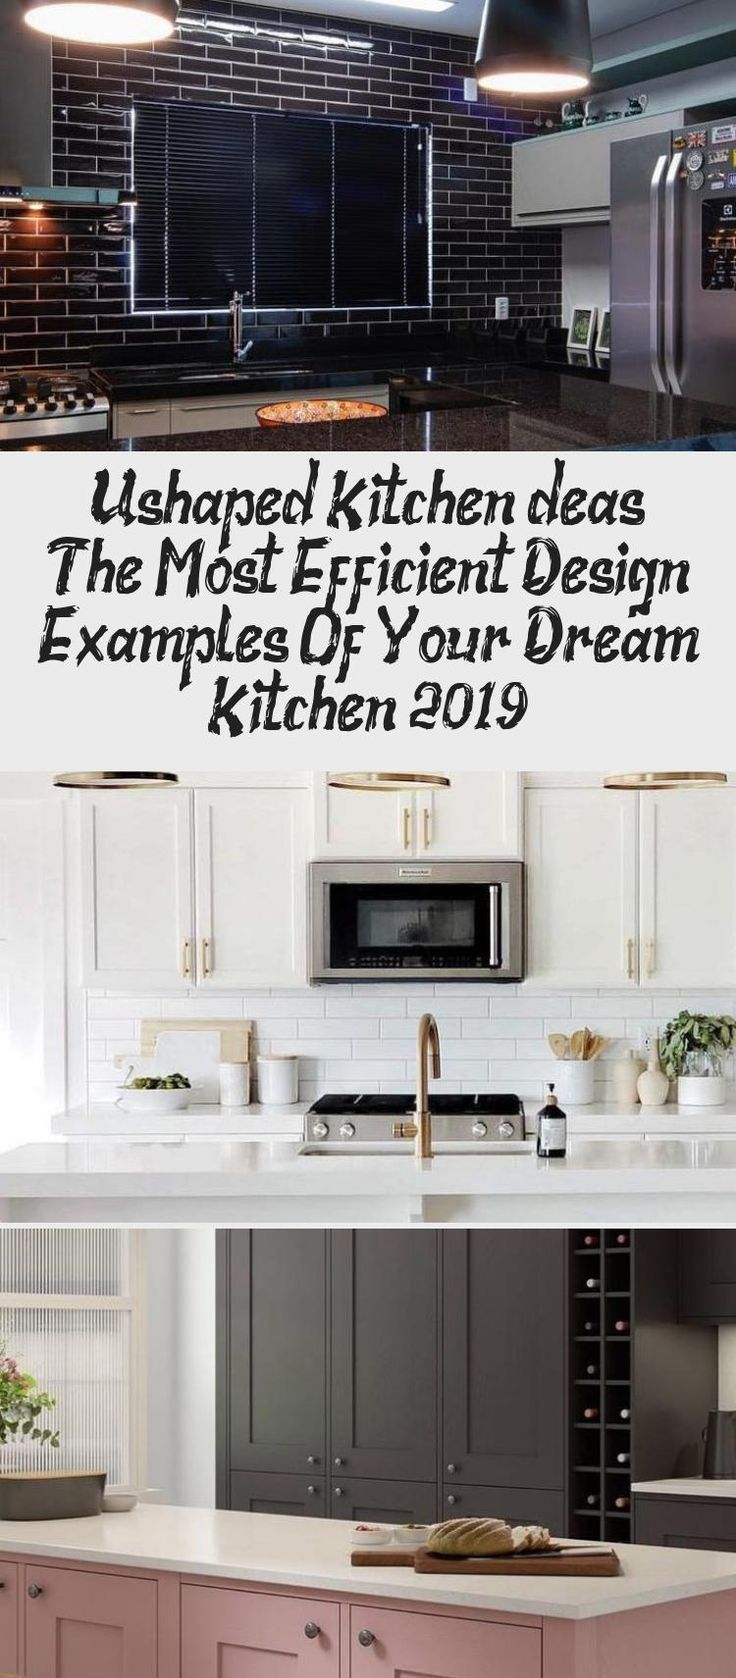 u shaped kitchen i̇deas the most efficient design examples of your dream kitchen 2019 kitchen on kitchen ideas u shaped id=30619